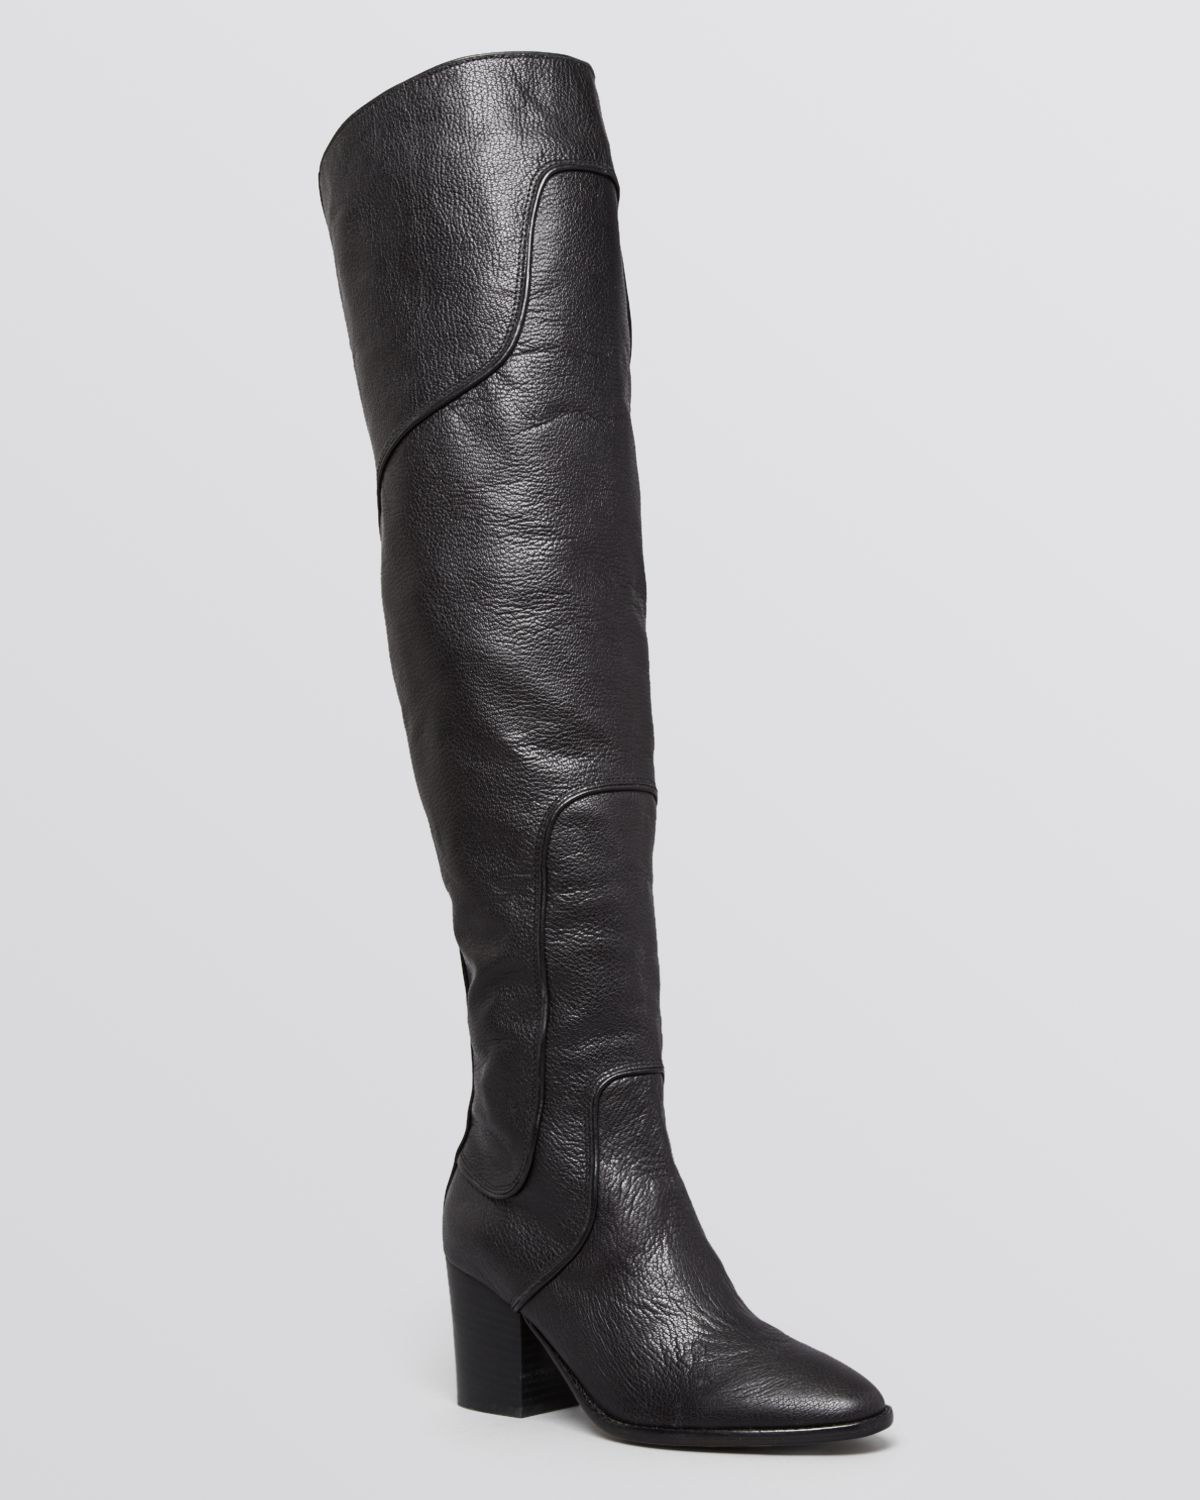 67772be4229 Lyst - Rebecca Minkoff Over The Knee Boots - Blessing in Black